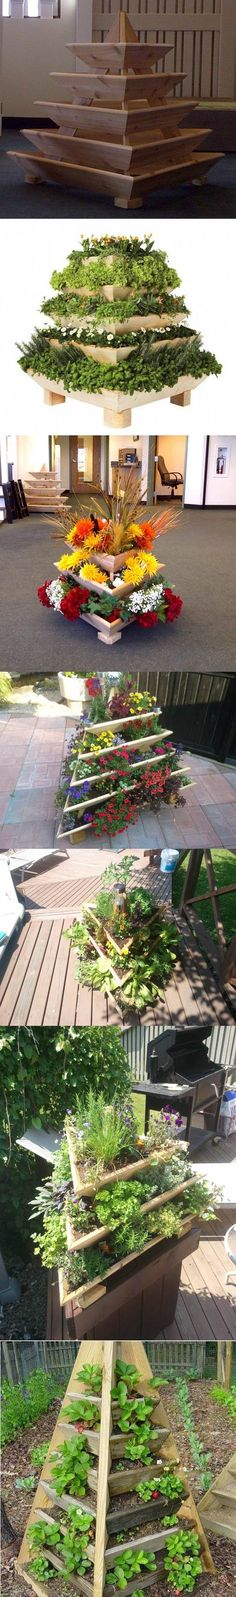 Creative Idea of Home Gardening – Triolife Plant Pyramid.